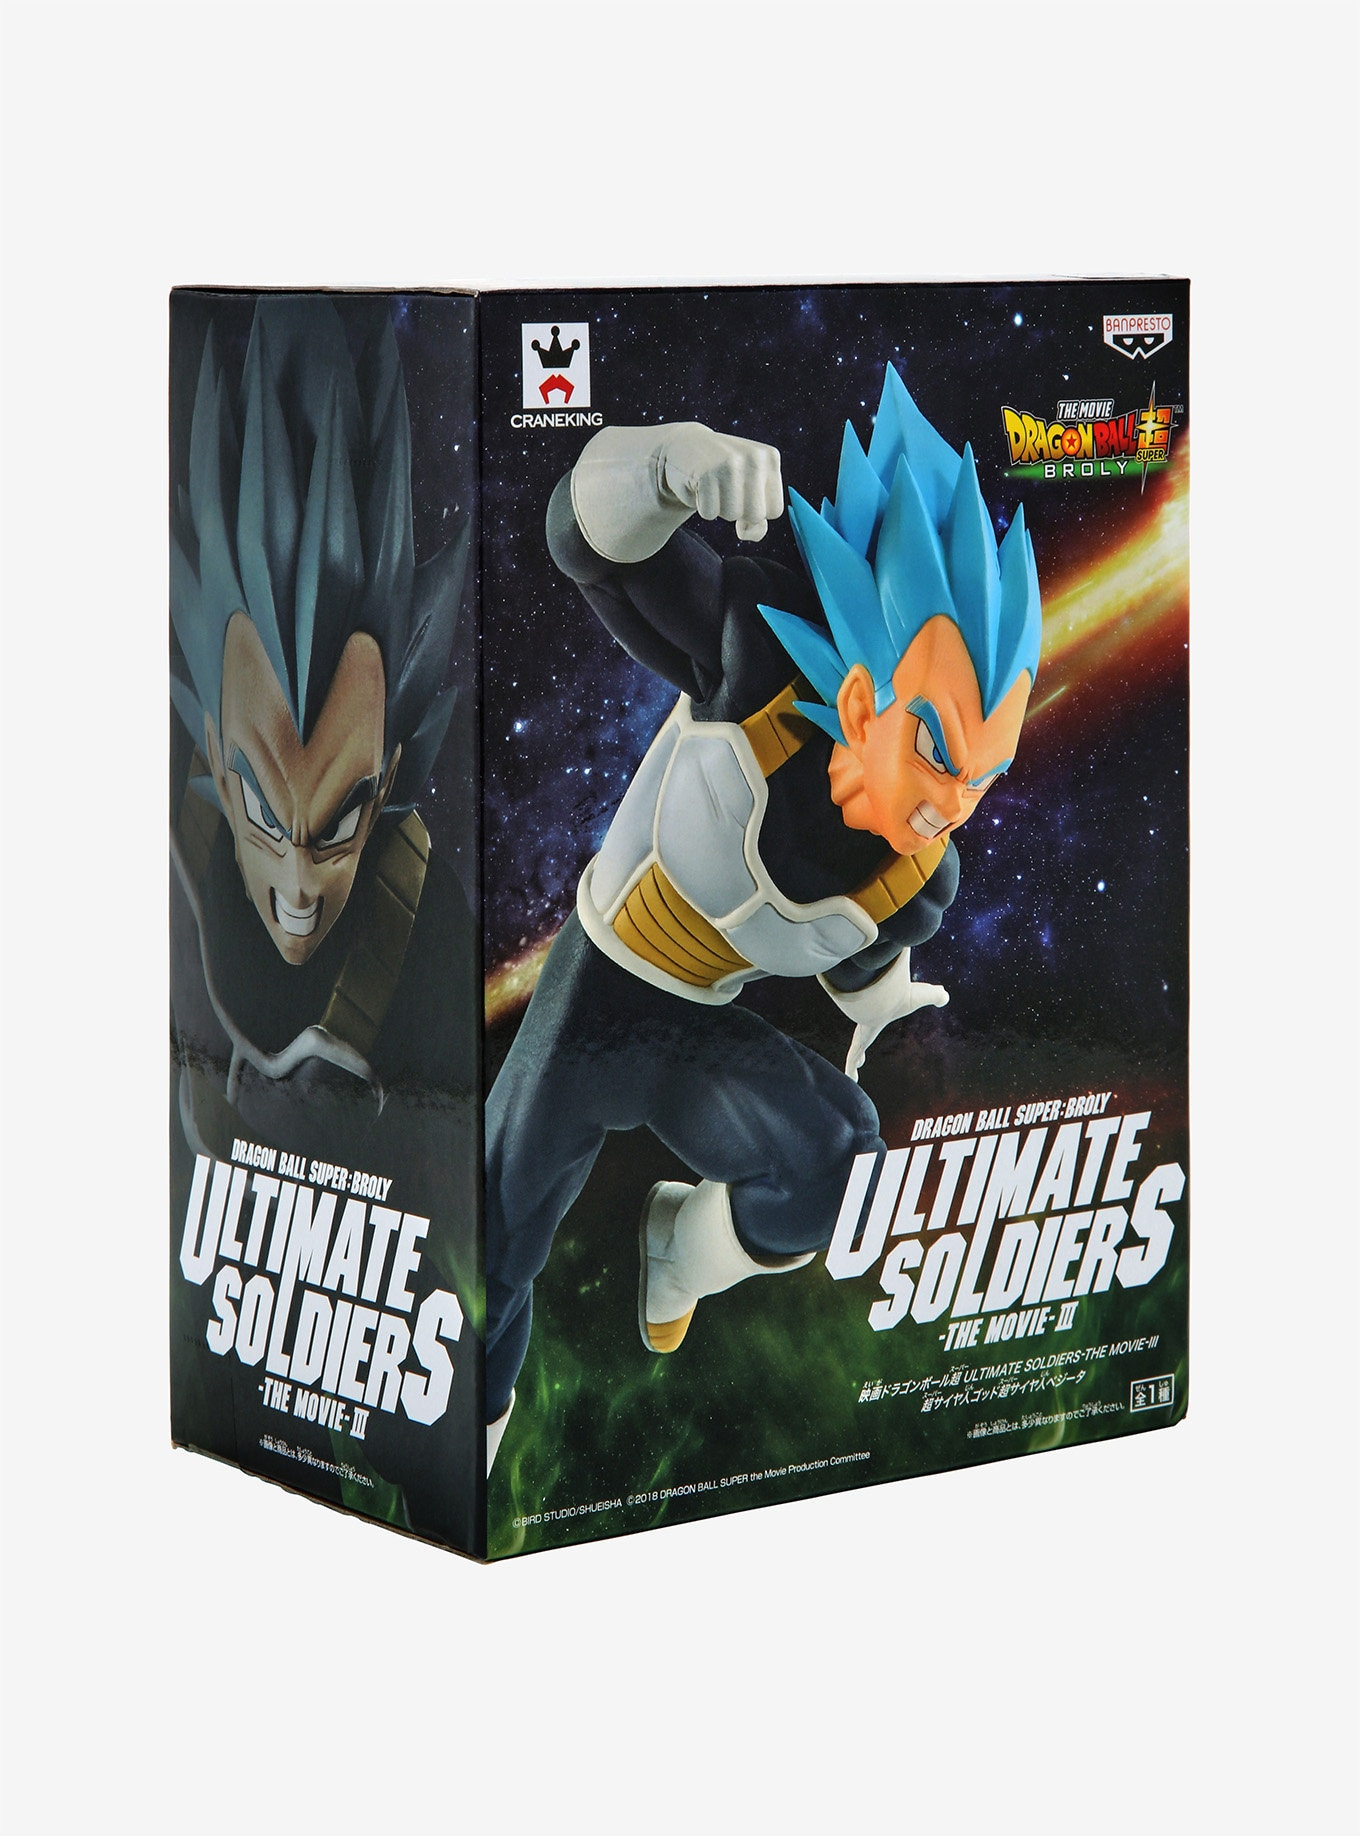 Vegeta, Figure, Dragon Ball, Super: Broly Ultimate Soldiers, The Movie III, Banpresto